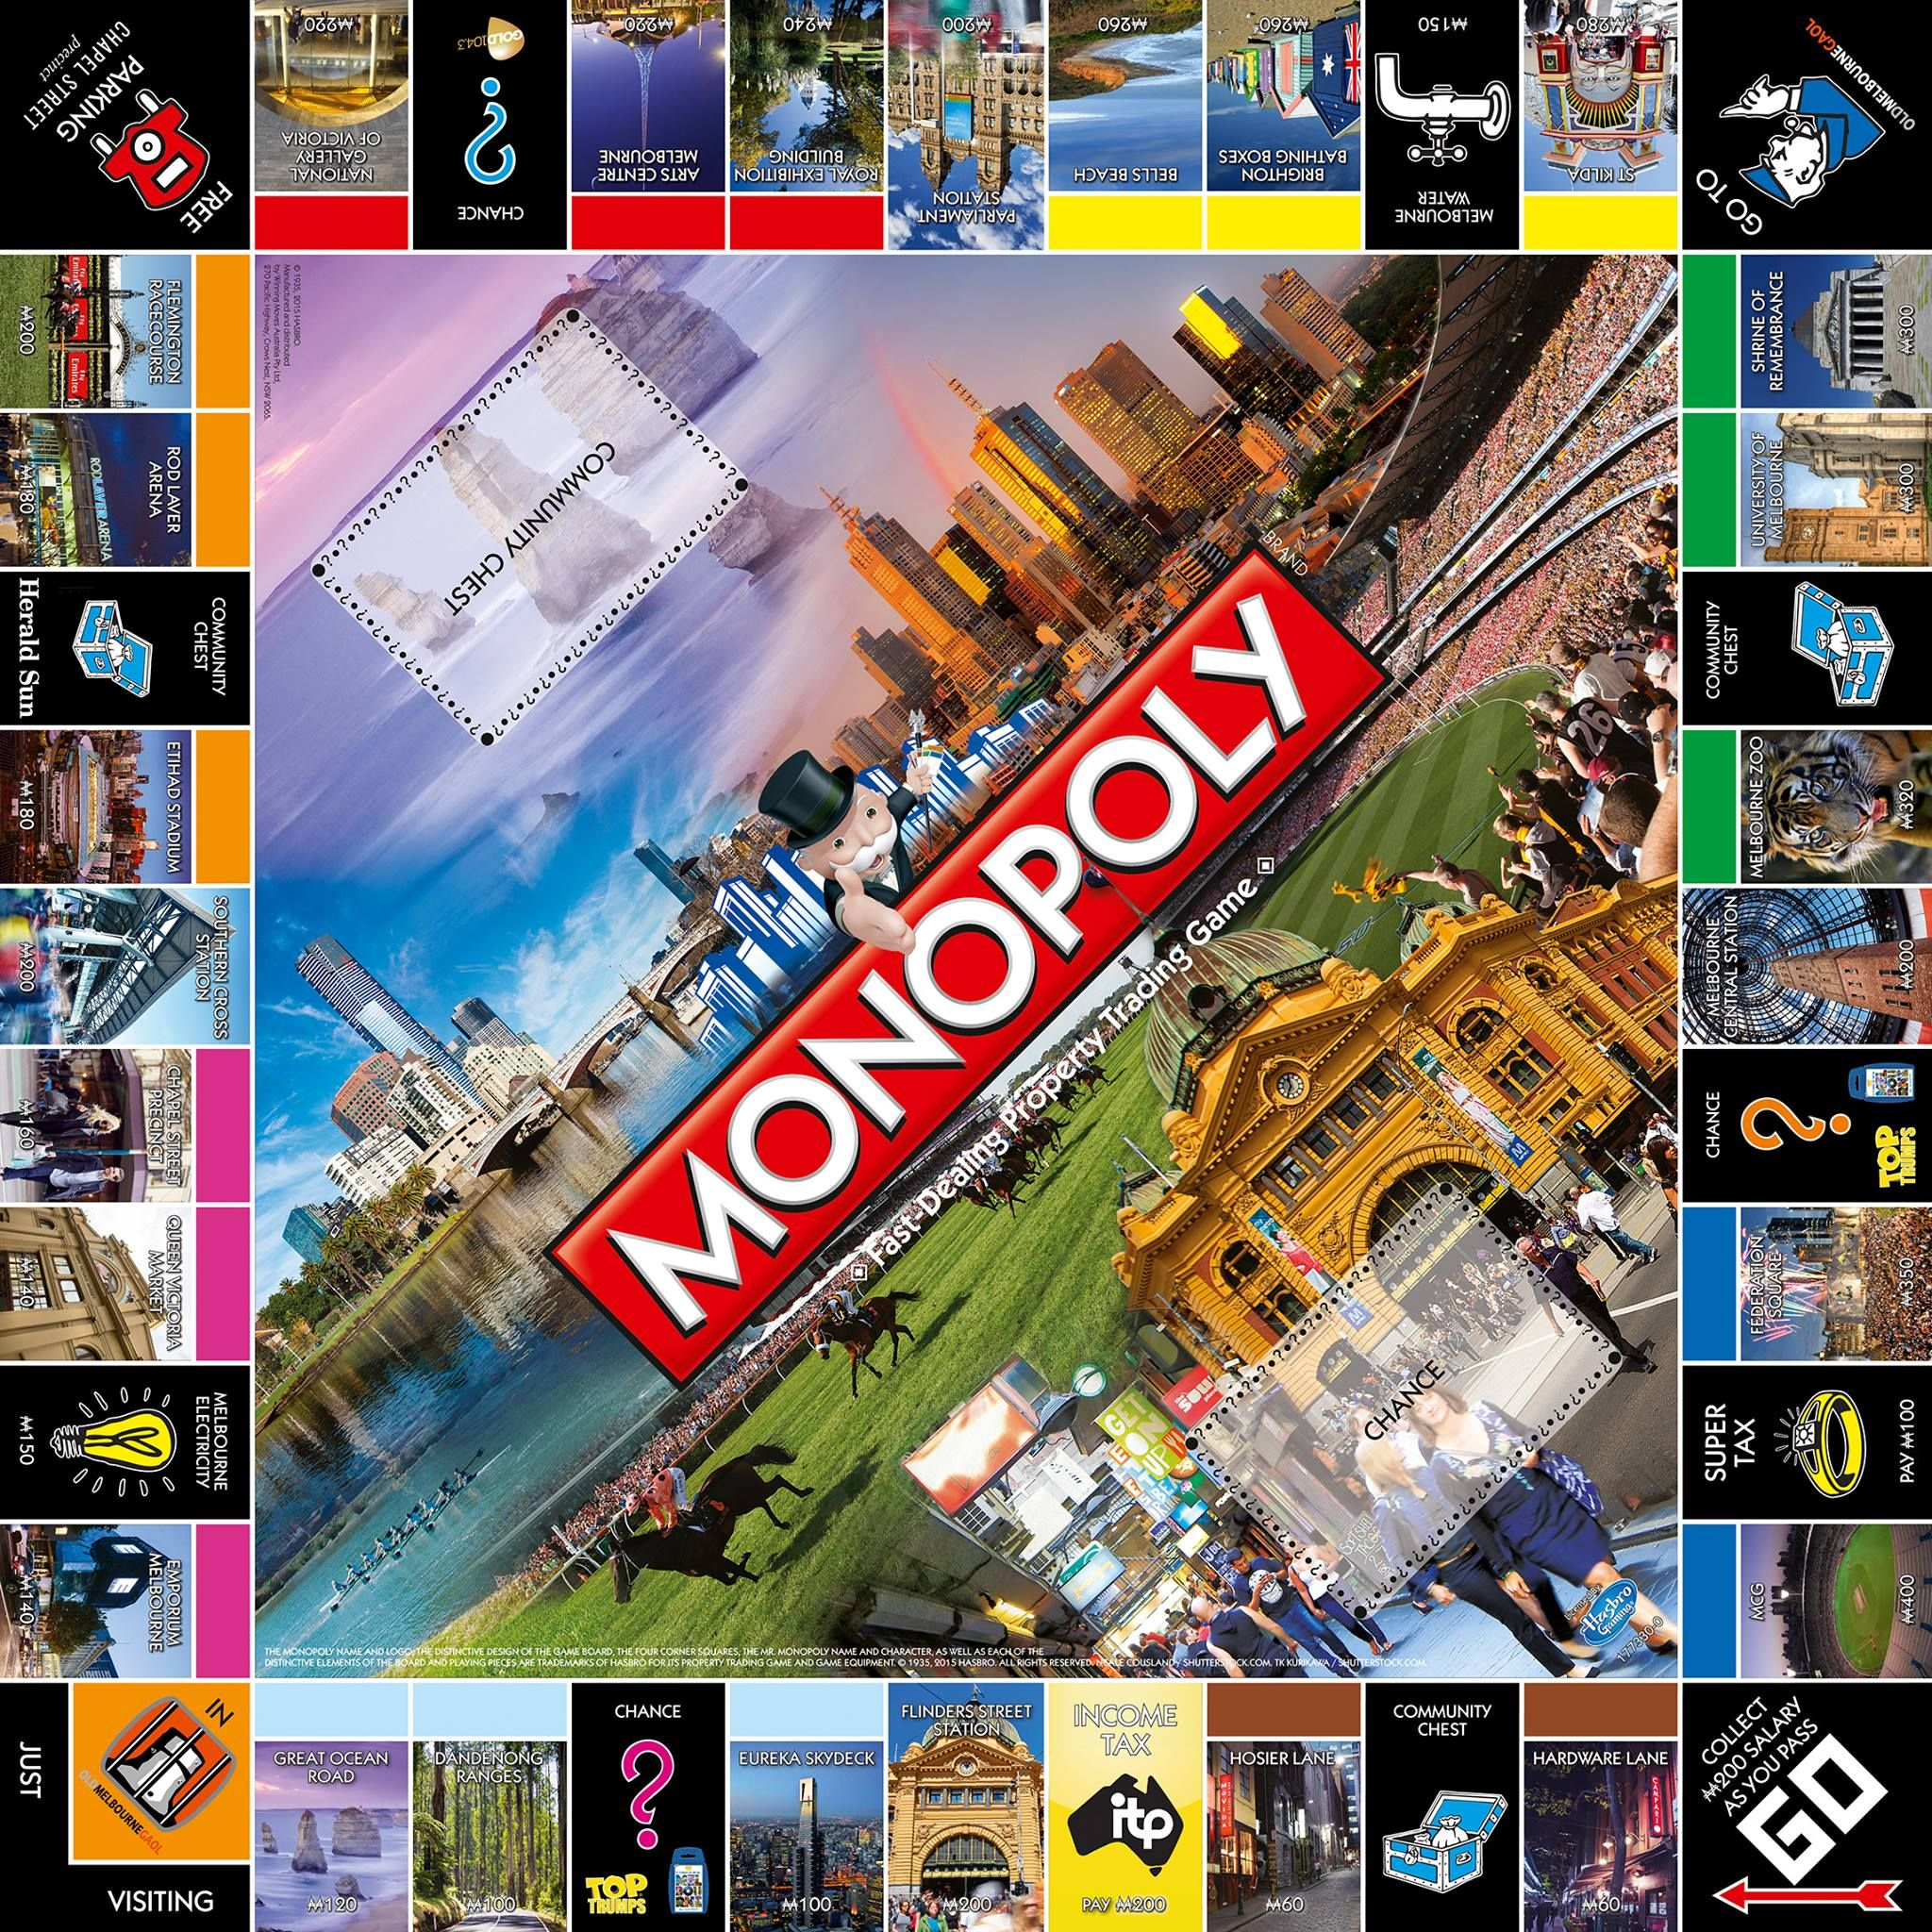 Cherry Bar Exposes Monopoly's Shakedown Of Melbourne